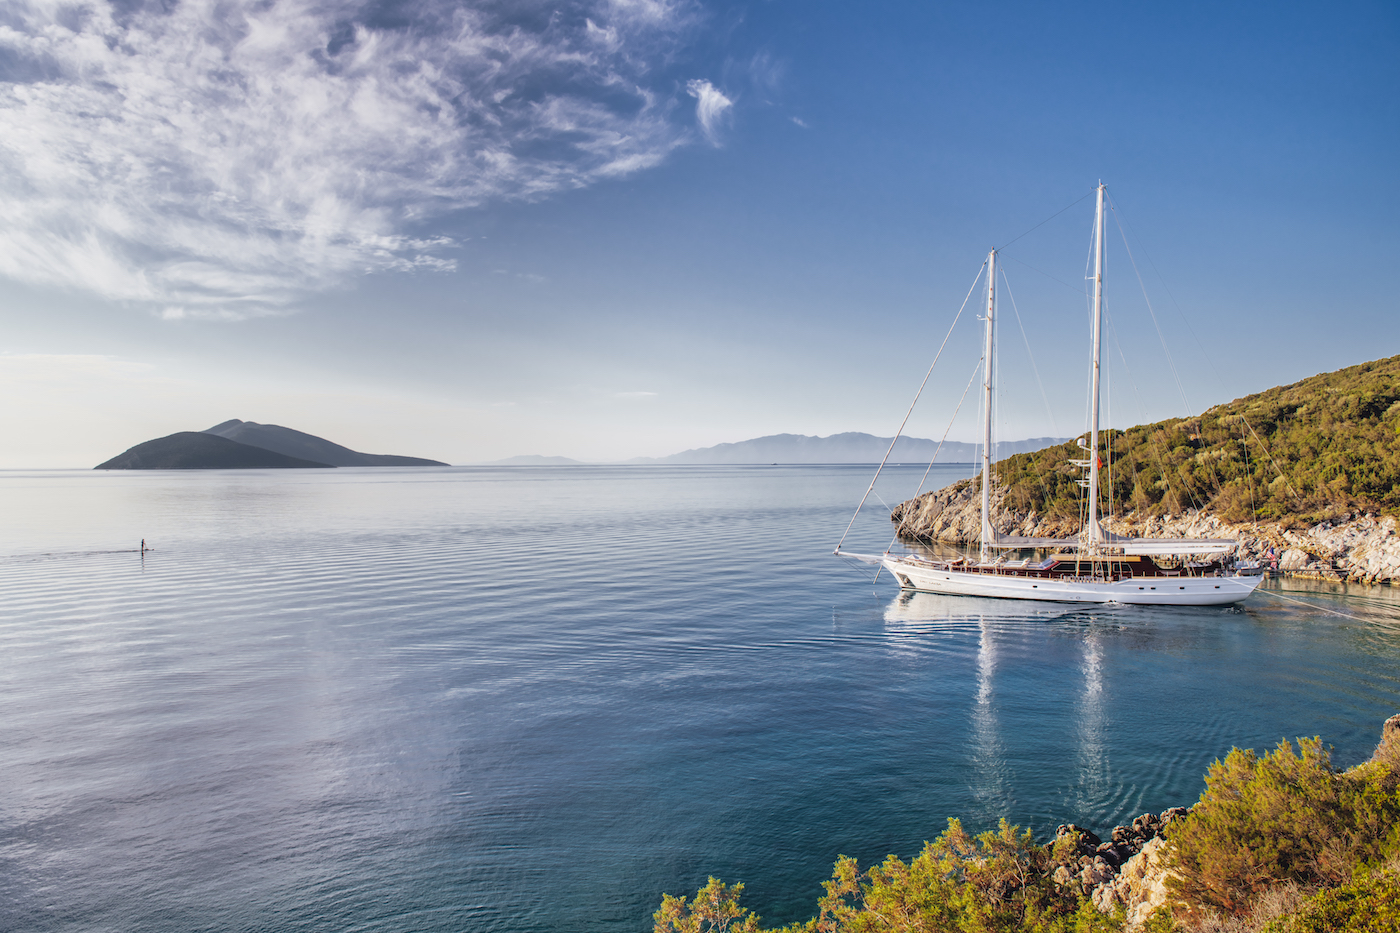 Turkish Gulet HIC SALTA available for charter